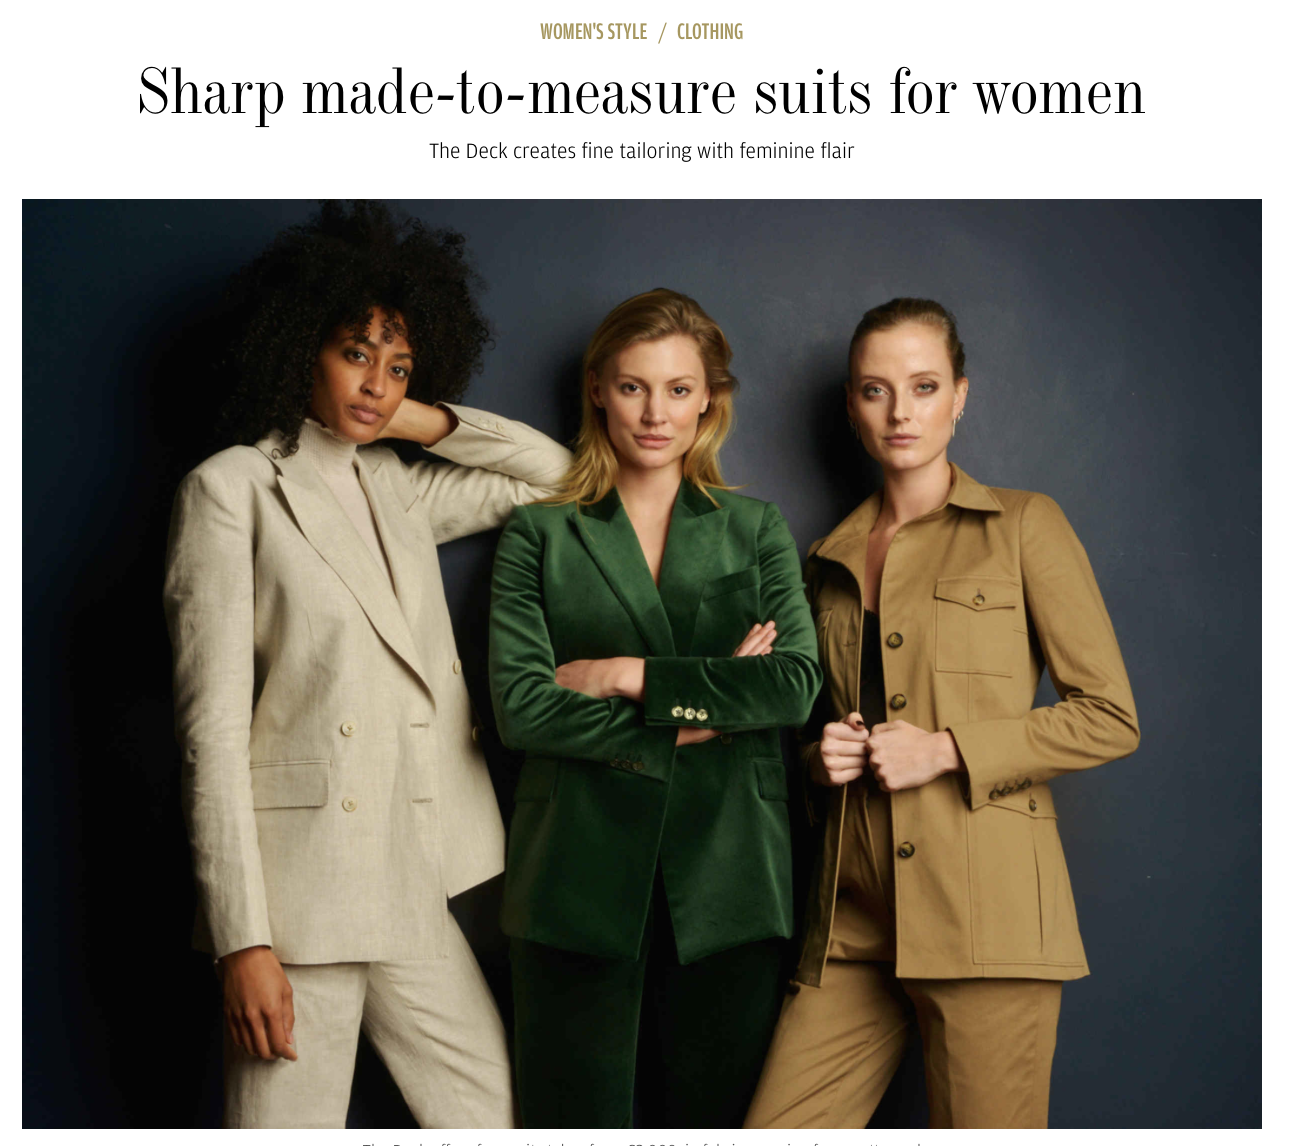 """Financial Times How to Spend It: Sharp suits for women - On the subject of why it took until 2016 for a woman to wear trousers in Ascot's Royal Enclosure, Daisy Knatchbull sighs and says: """"I guess rules are rules."""" Yet Knatchbull is the woman who first bucked the tradition and wore a morning suit to the Queen's favourite horse race. """"The reaction from women was extraordinary; they clapped and cheered""""…"""